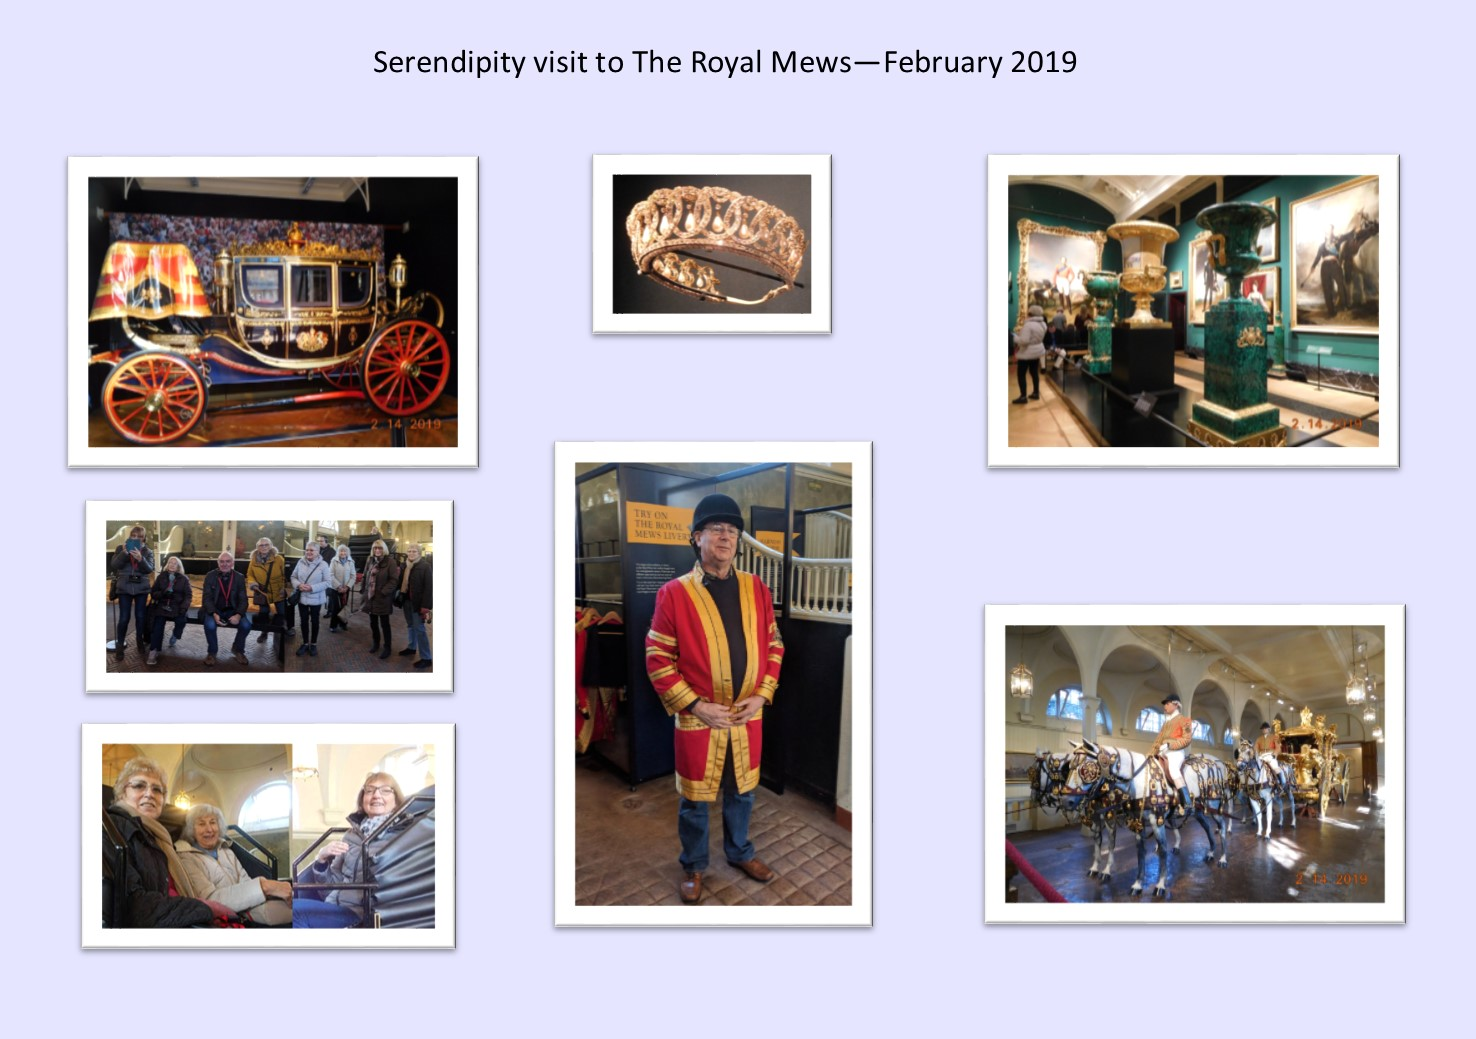 Serendipity at The Royal Mews Feb 2019